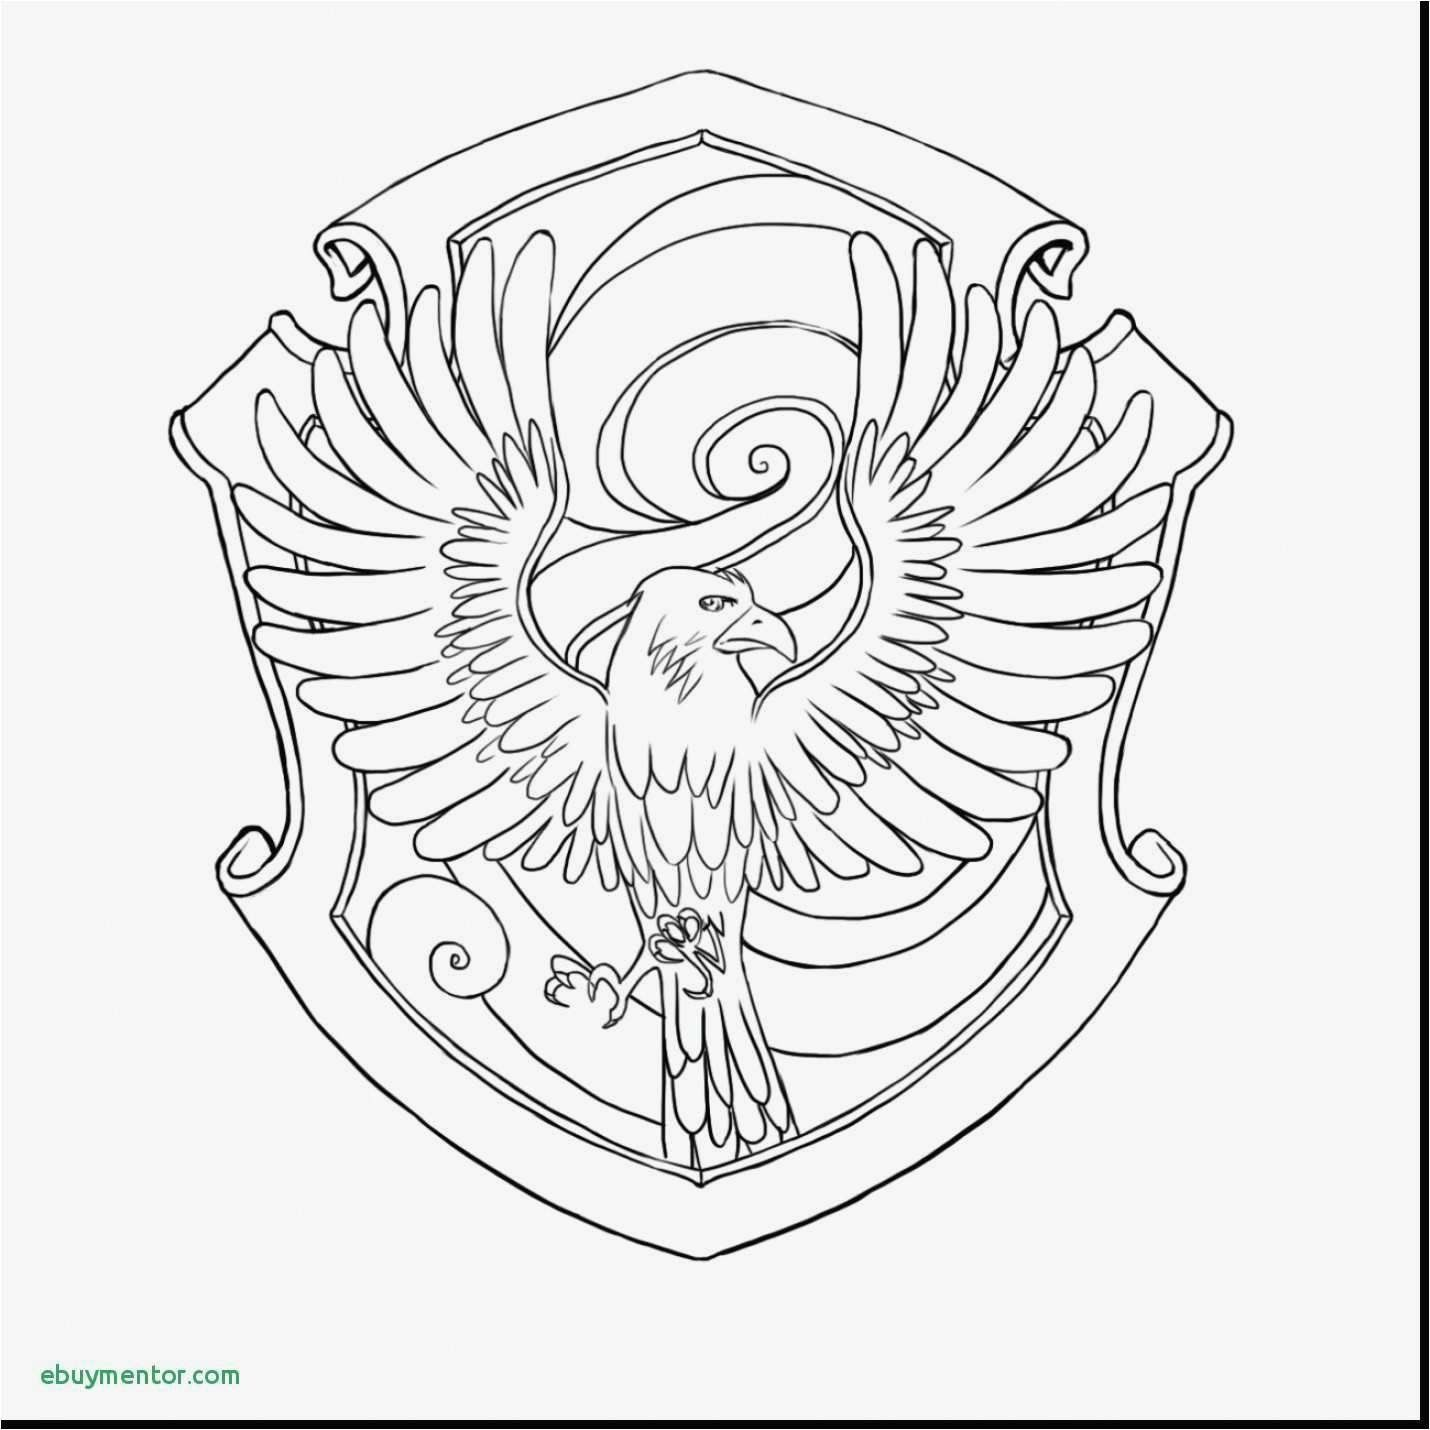 13+ Printable hogwarts coloring pages ideas